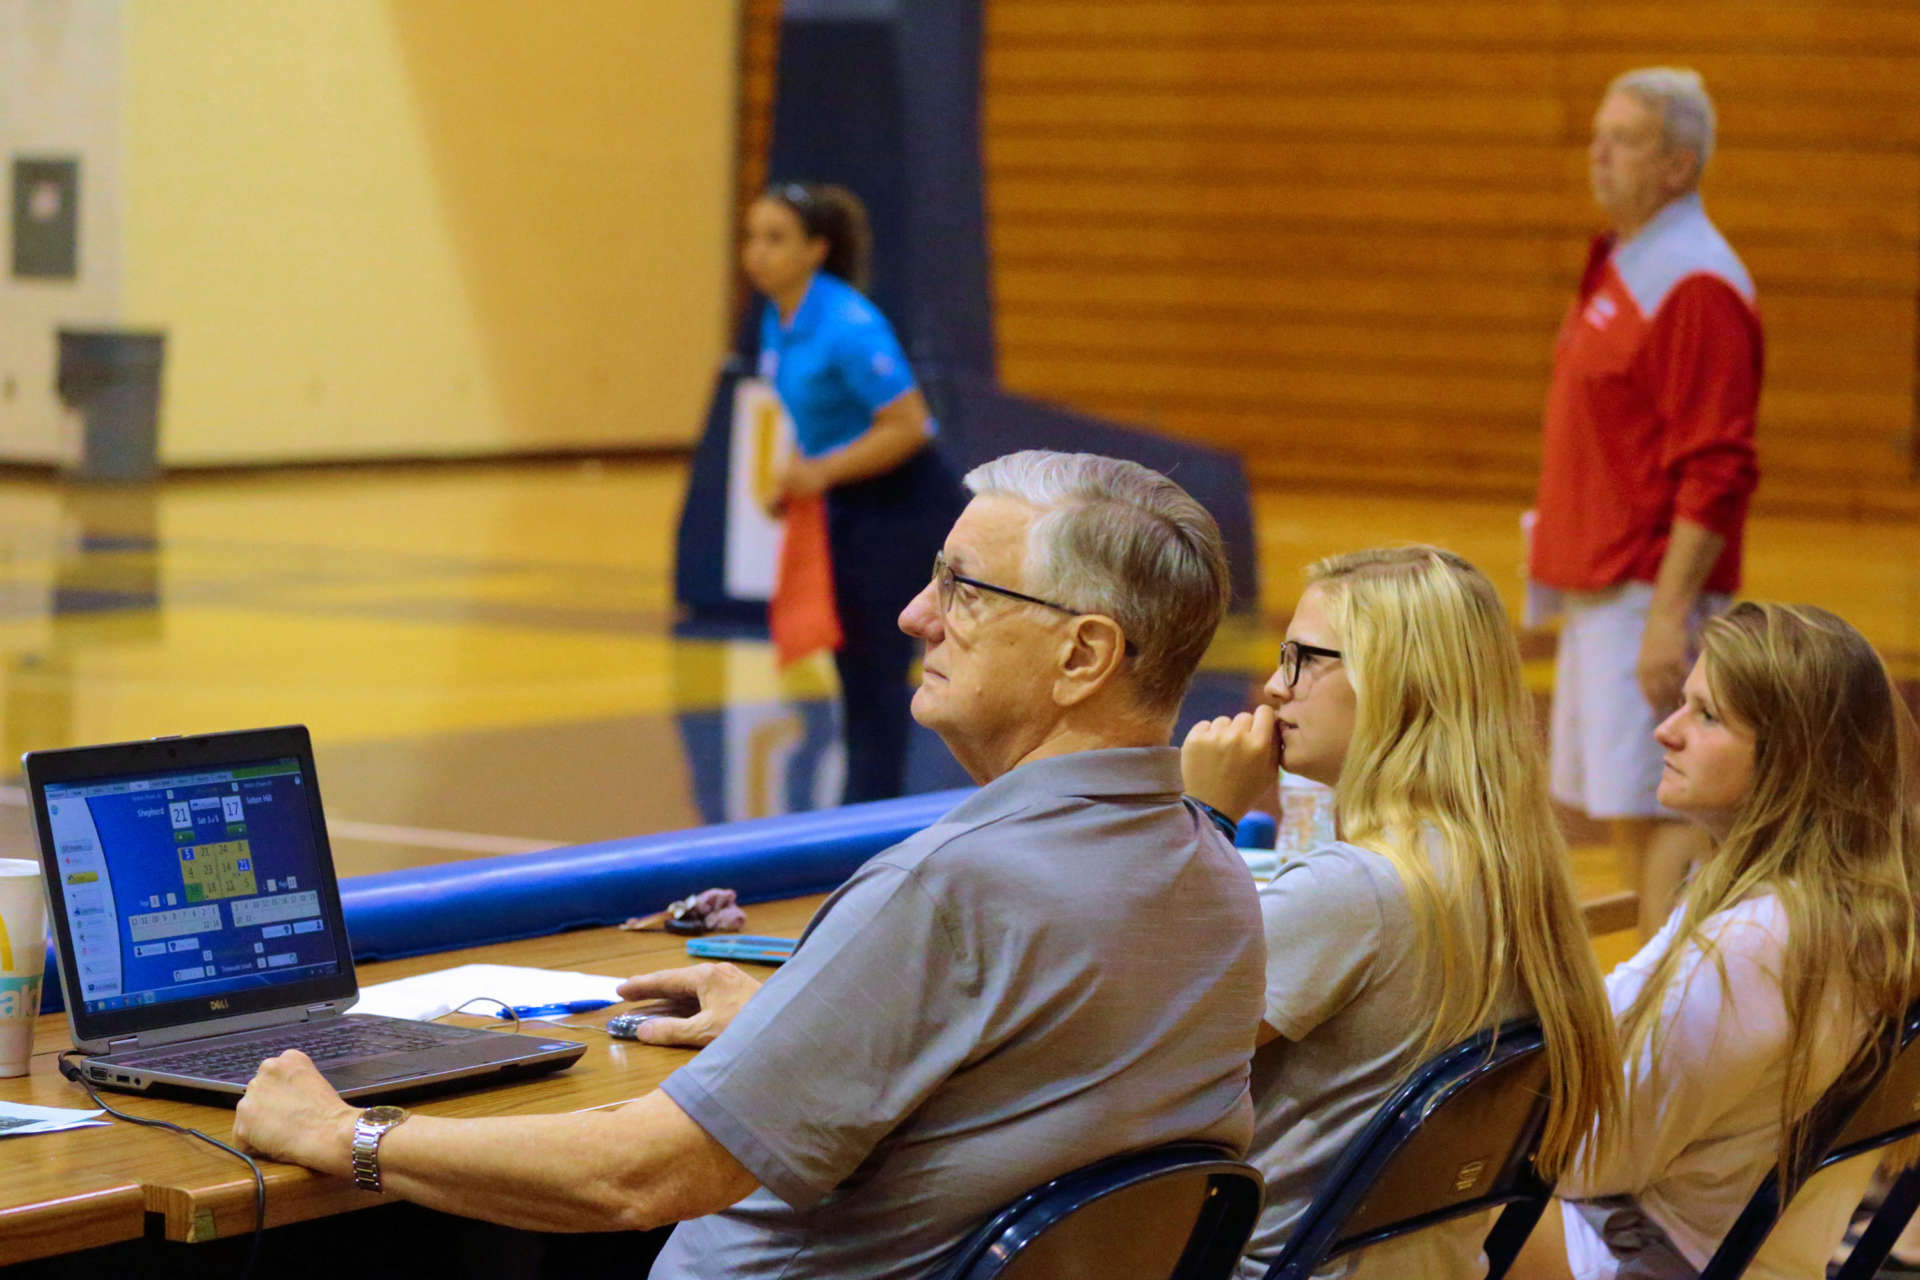 Phil Porterfield works the scorers' table at a Shepherd University Women's Volleyball match.